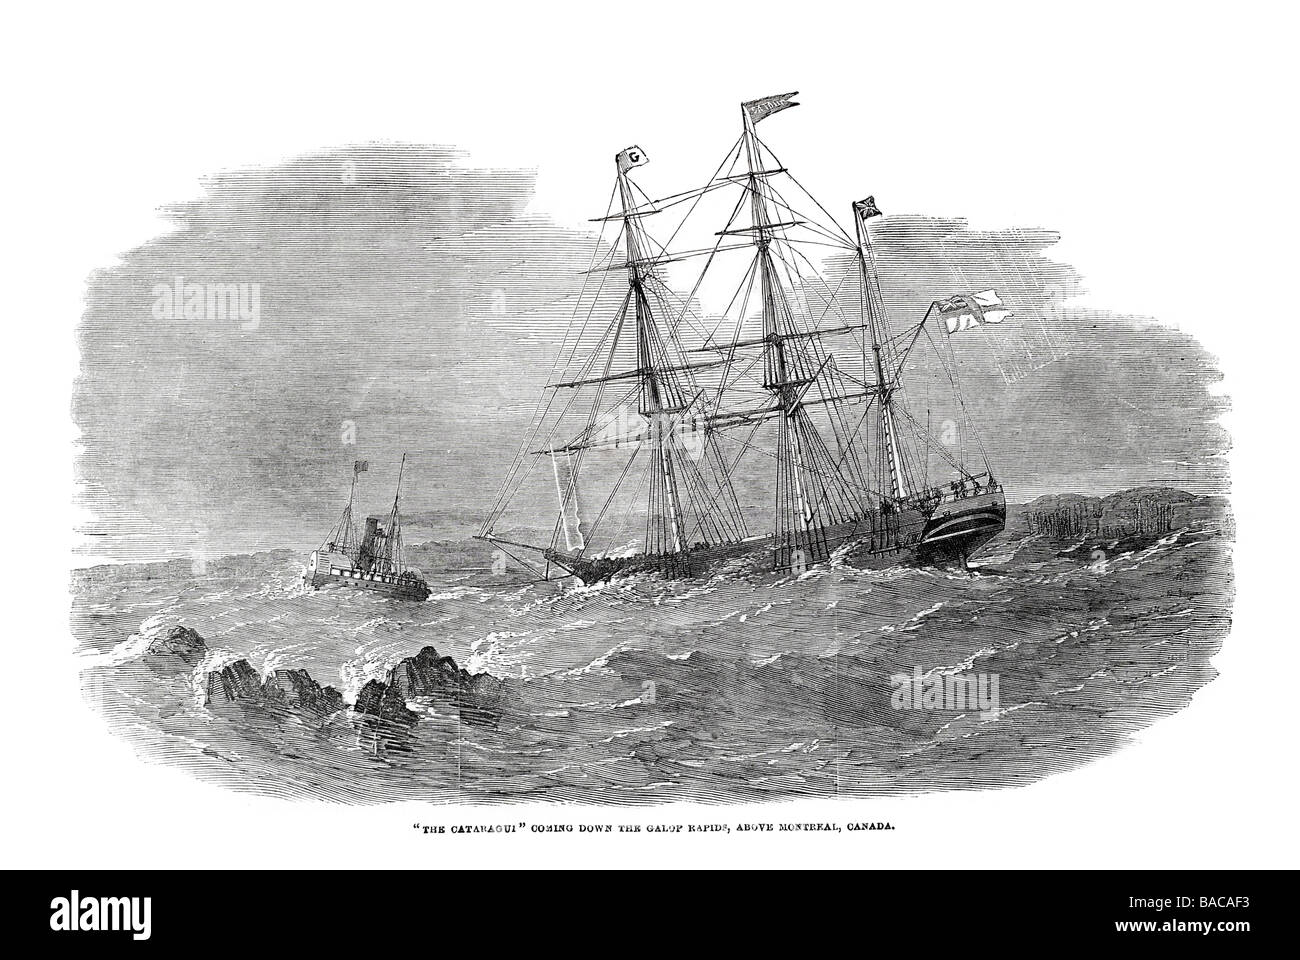 cataragui coming down the galop rapids above montreal canada 1854 - Stock Image